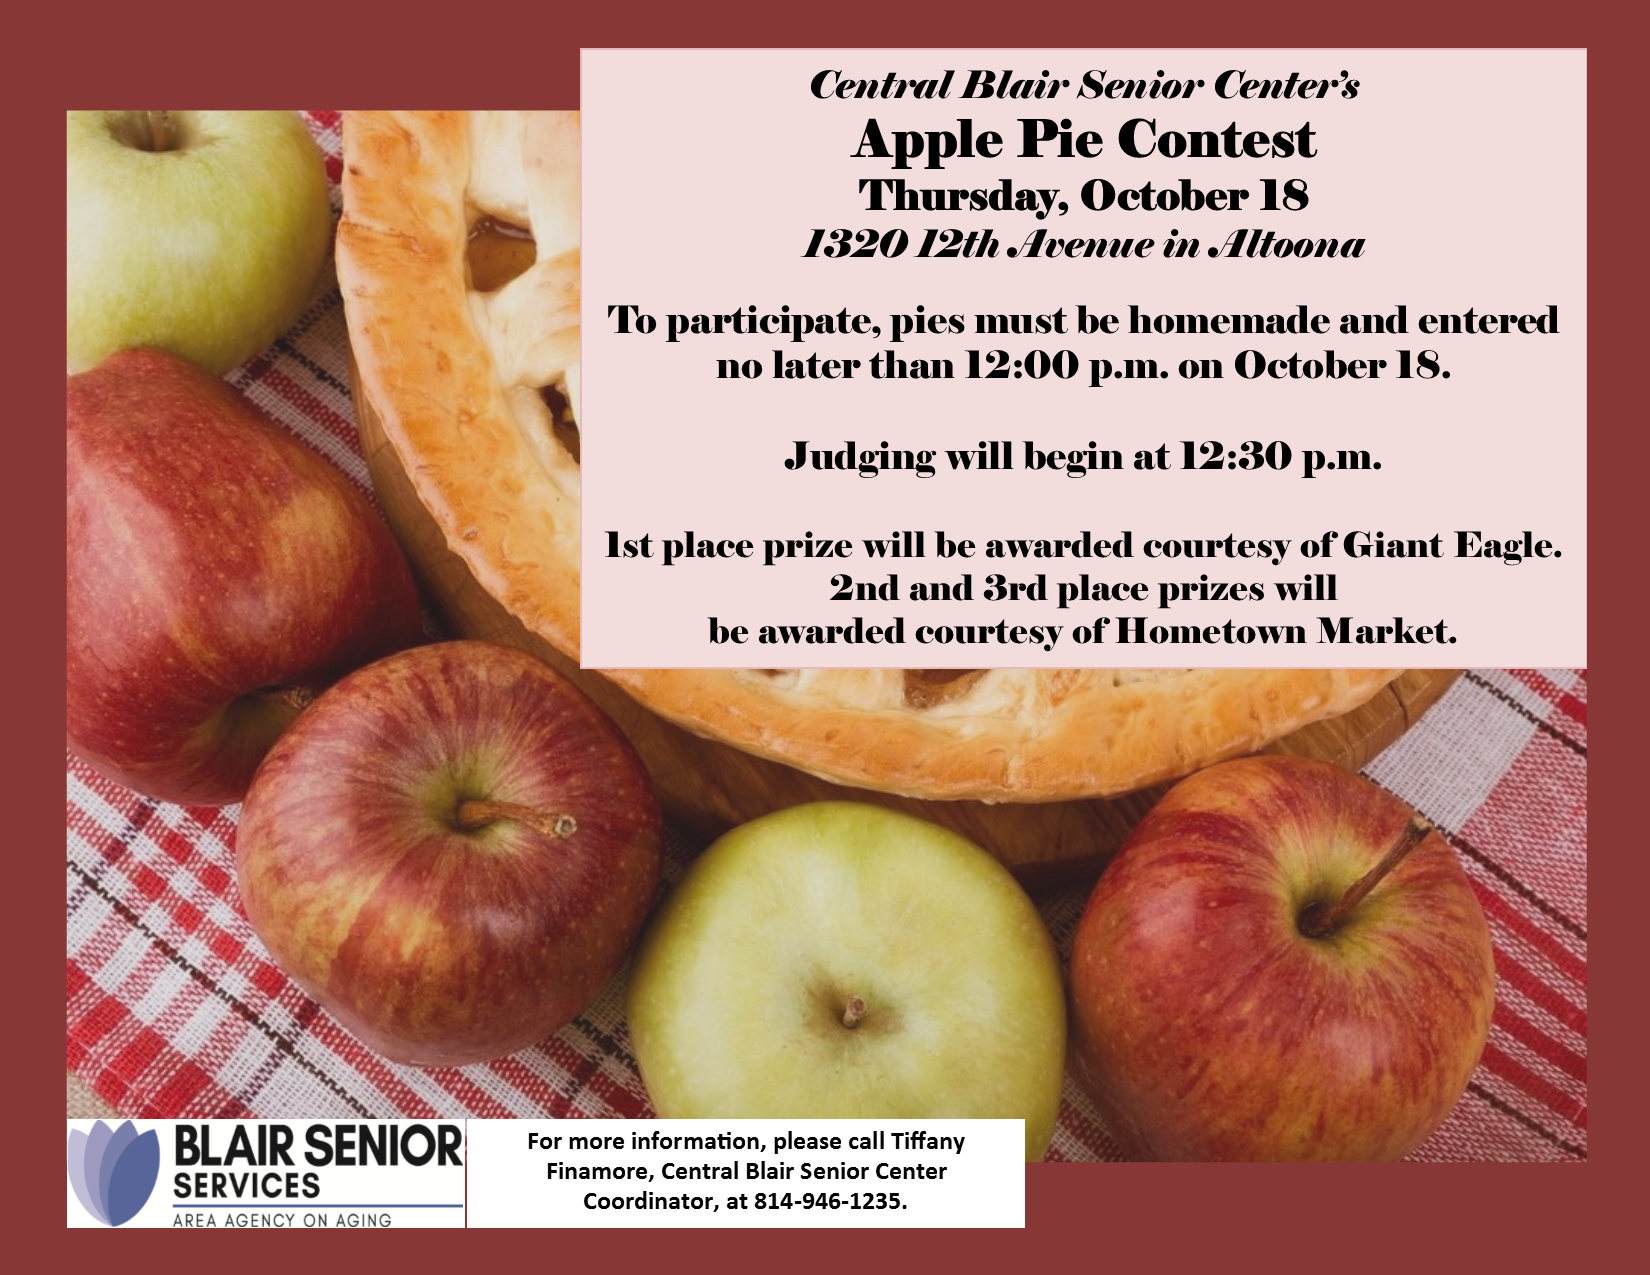 Apple Pie Contest @ Central Blair Senior Center